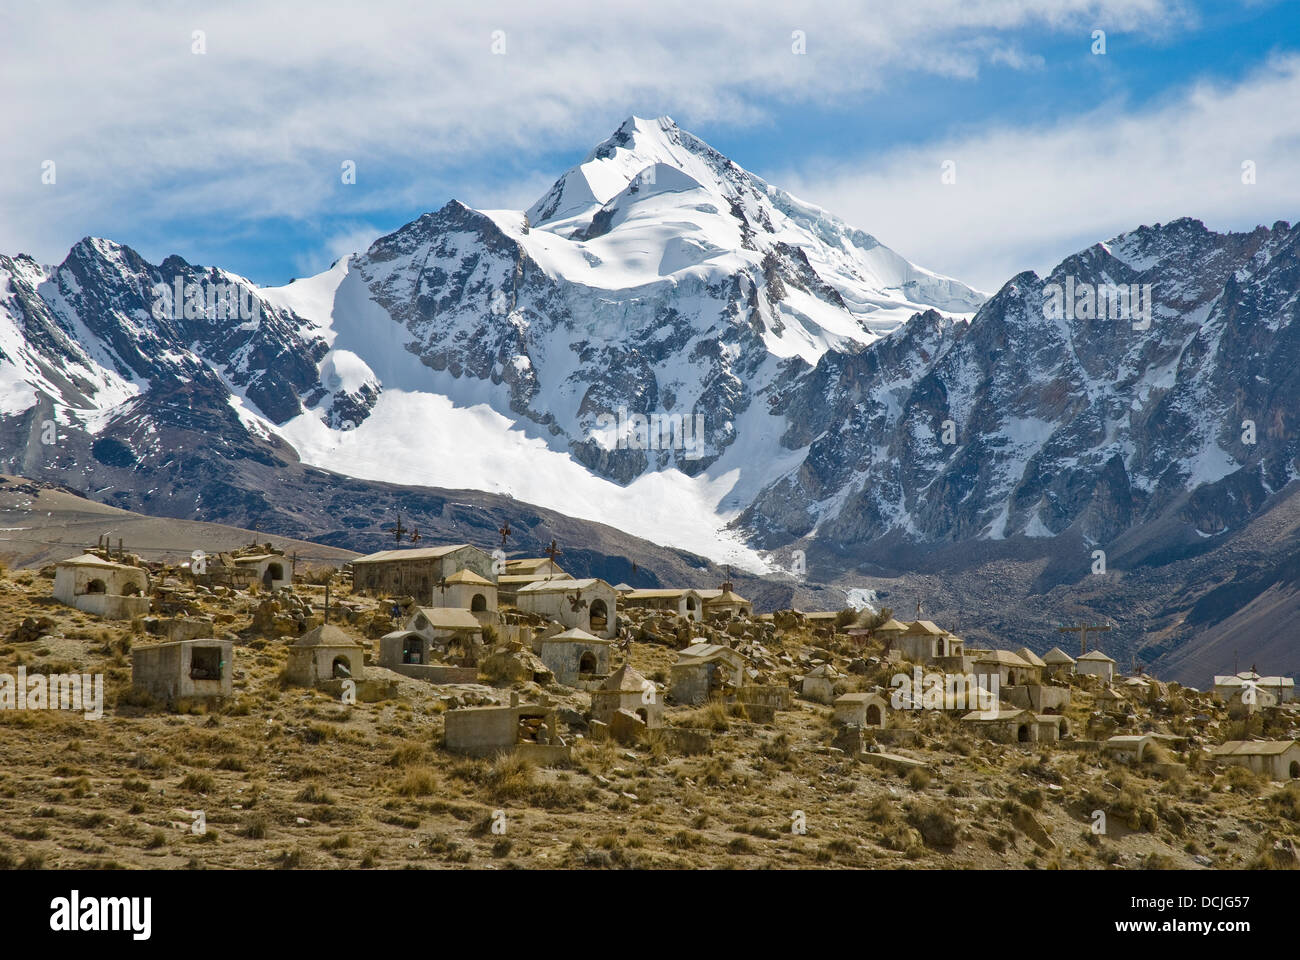 Cemetery of miners with the mountain Huayna Potosi in the background - Stock Image